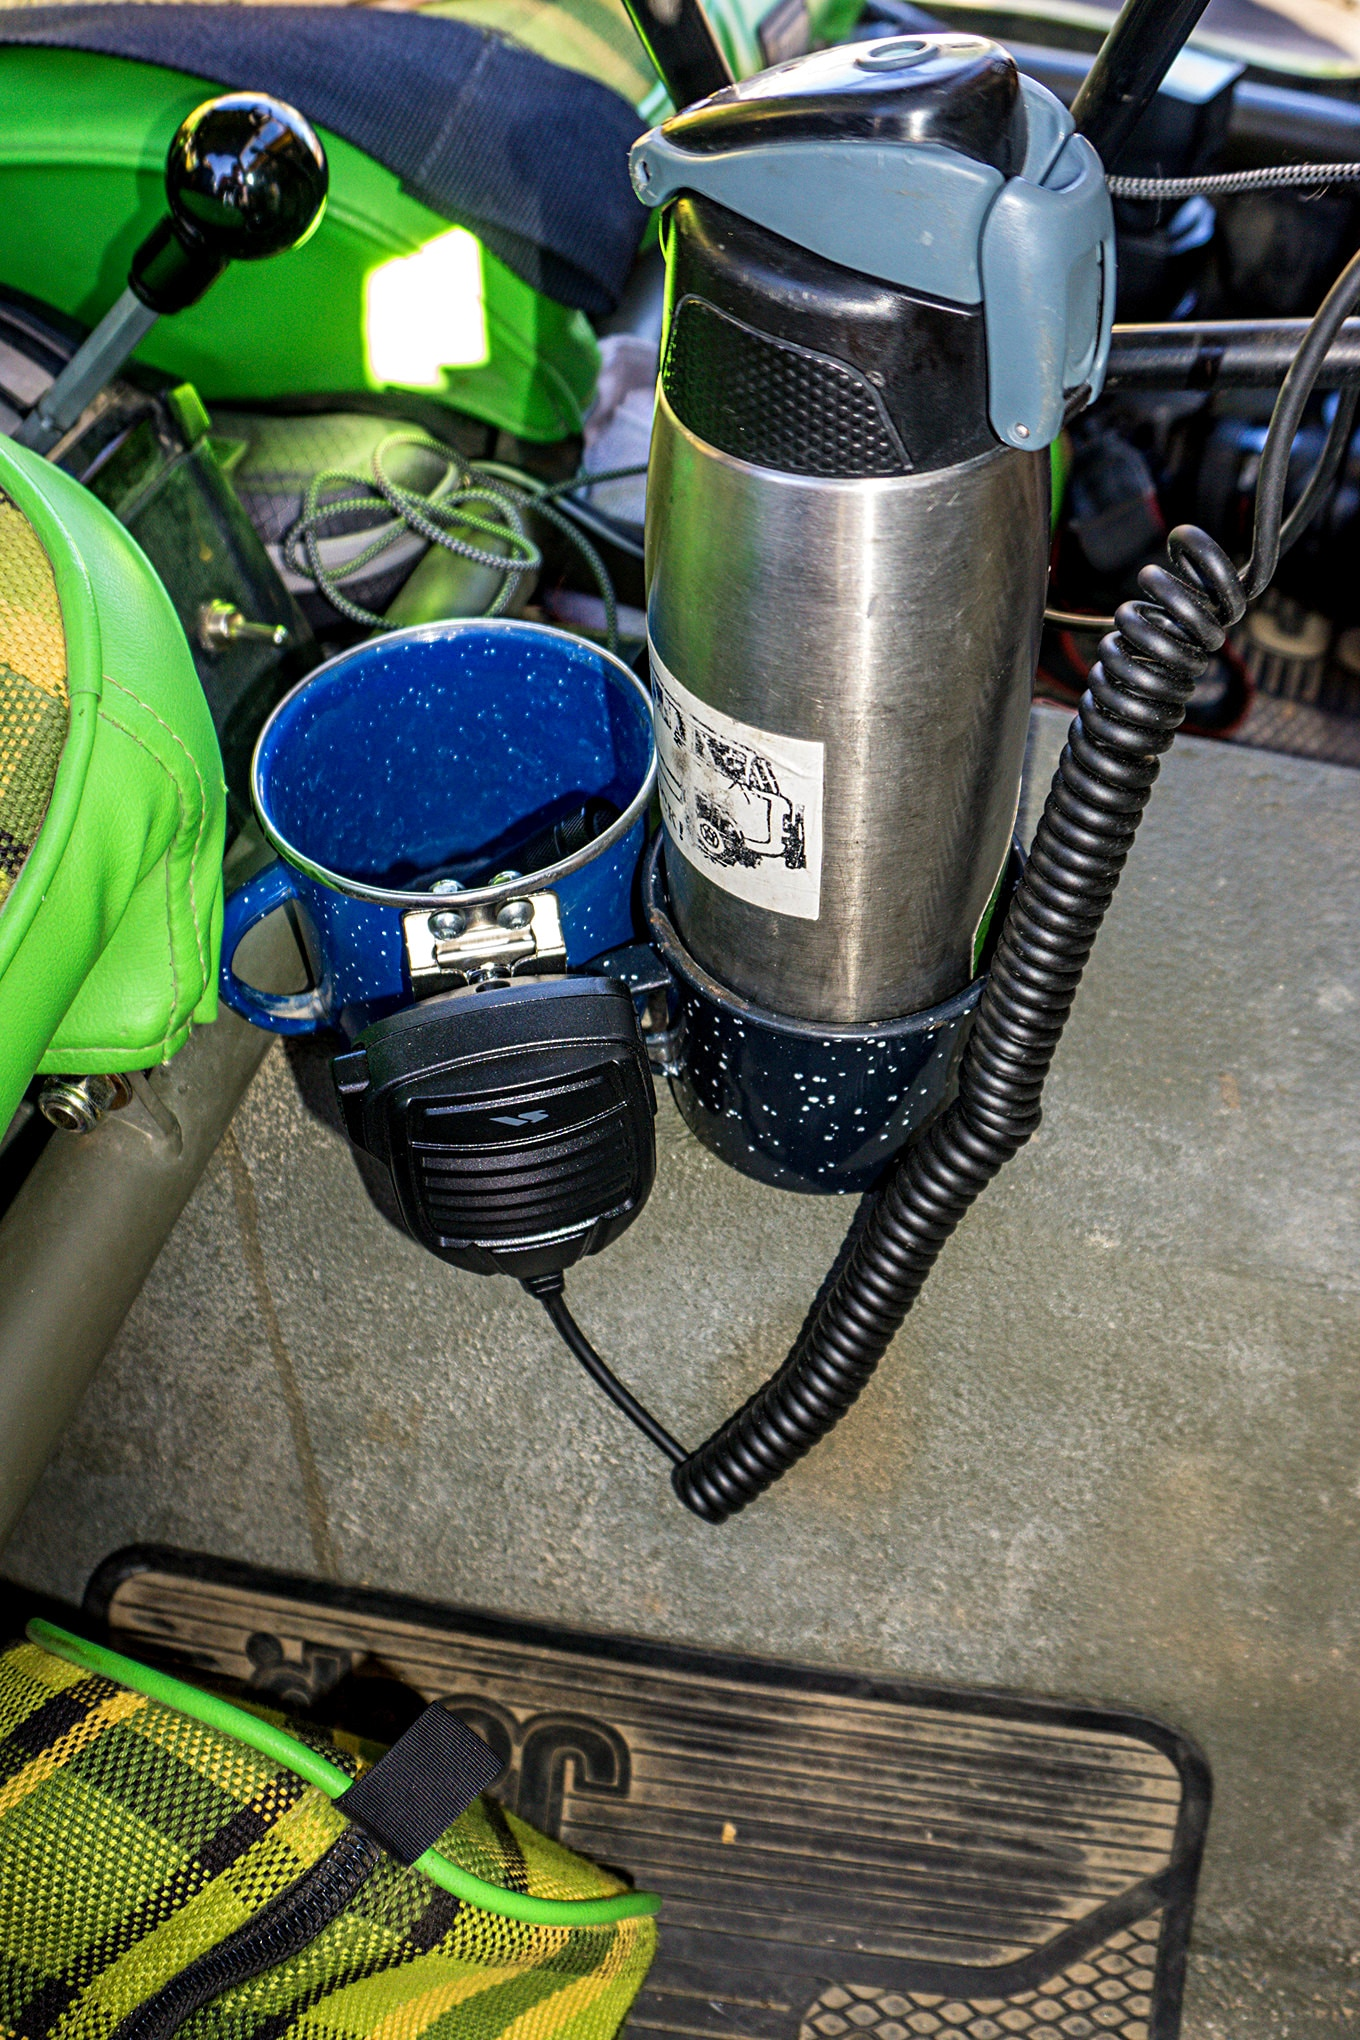 Fred Williams gives credit for these cupholders to the guys at Mopar Underground, who had tip cups bolted down in their FC concept at Moab. The cups are bolted to the tranny tunnel of the Jeep and provide convenient storage, but the locate does mean that they get hot on the trail.